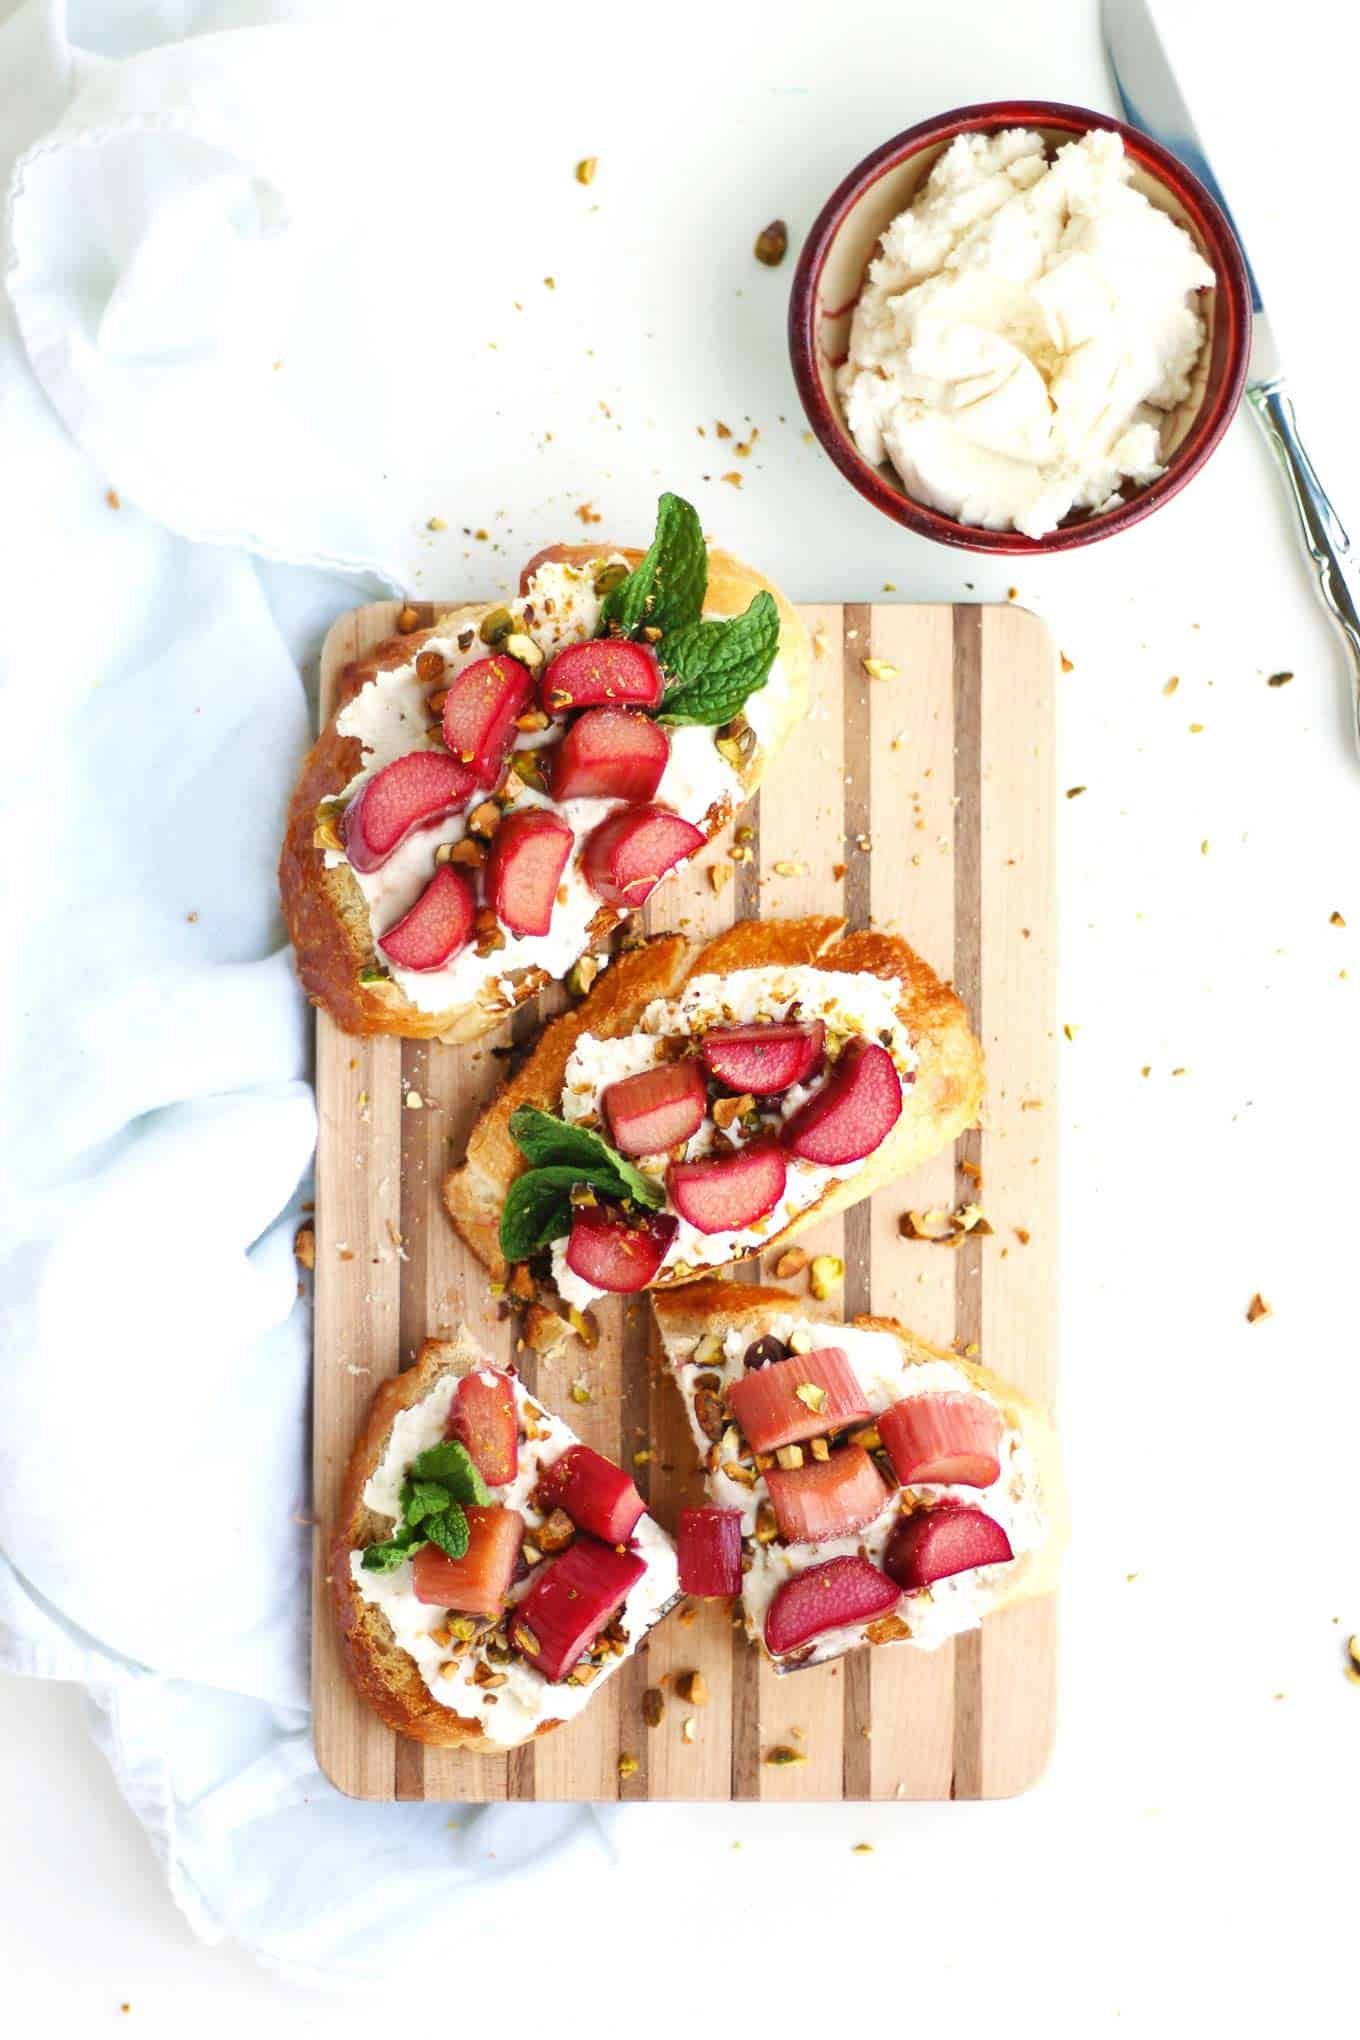 Honey baked rhubarb toast with ricotta and pistachios recipe! Honey roasted rhubarb / Spring recipes / Vegetarian breakfast or lunch / Open faced sandwiches // Rhubarbarians